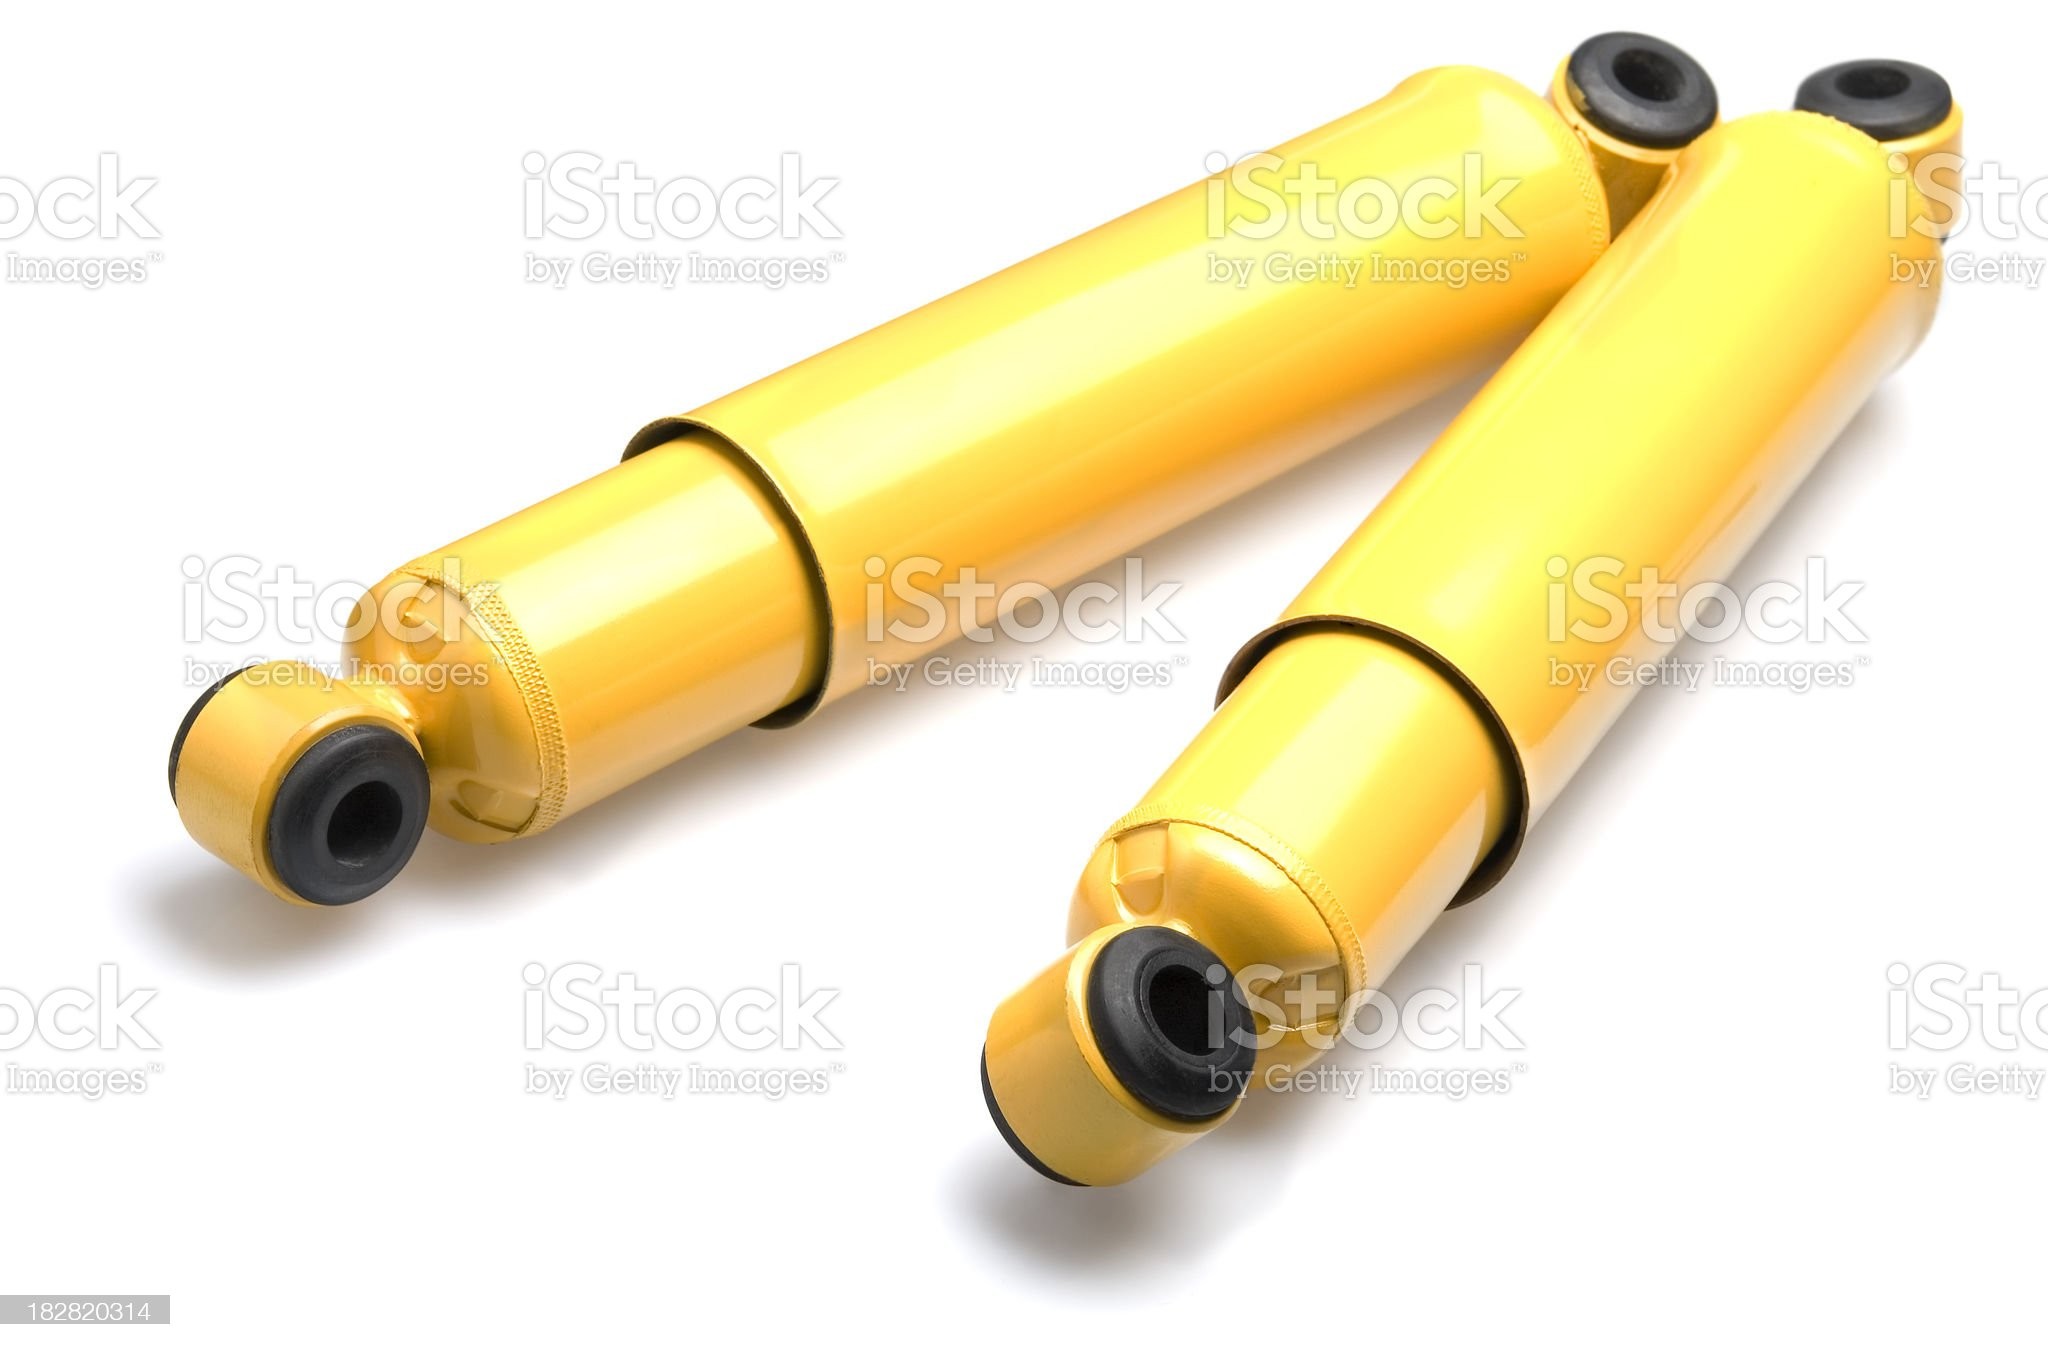 shock absorbers royalty-free stock photo